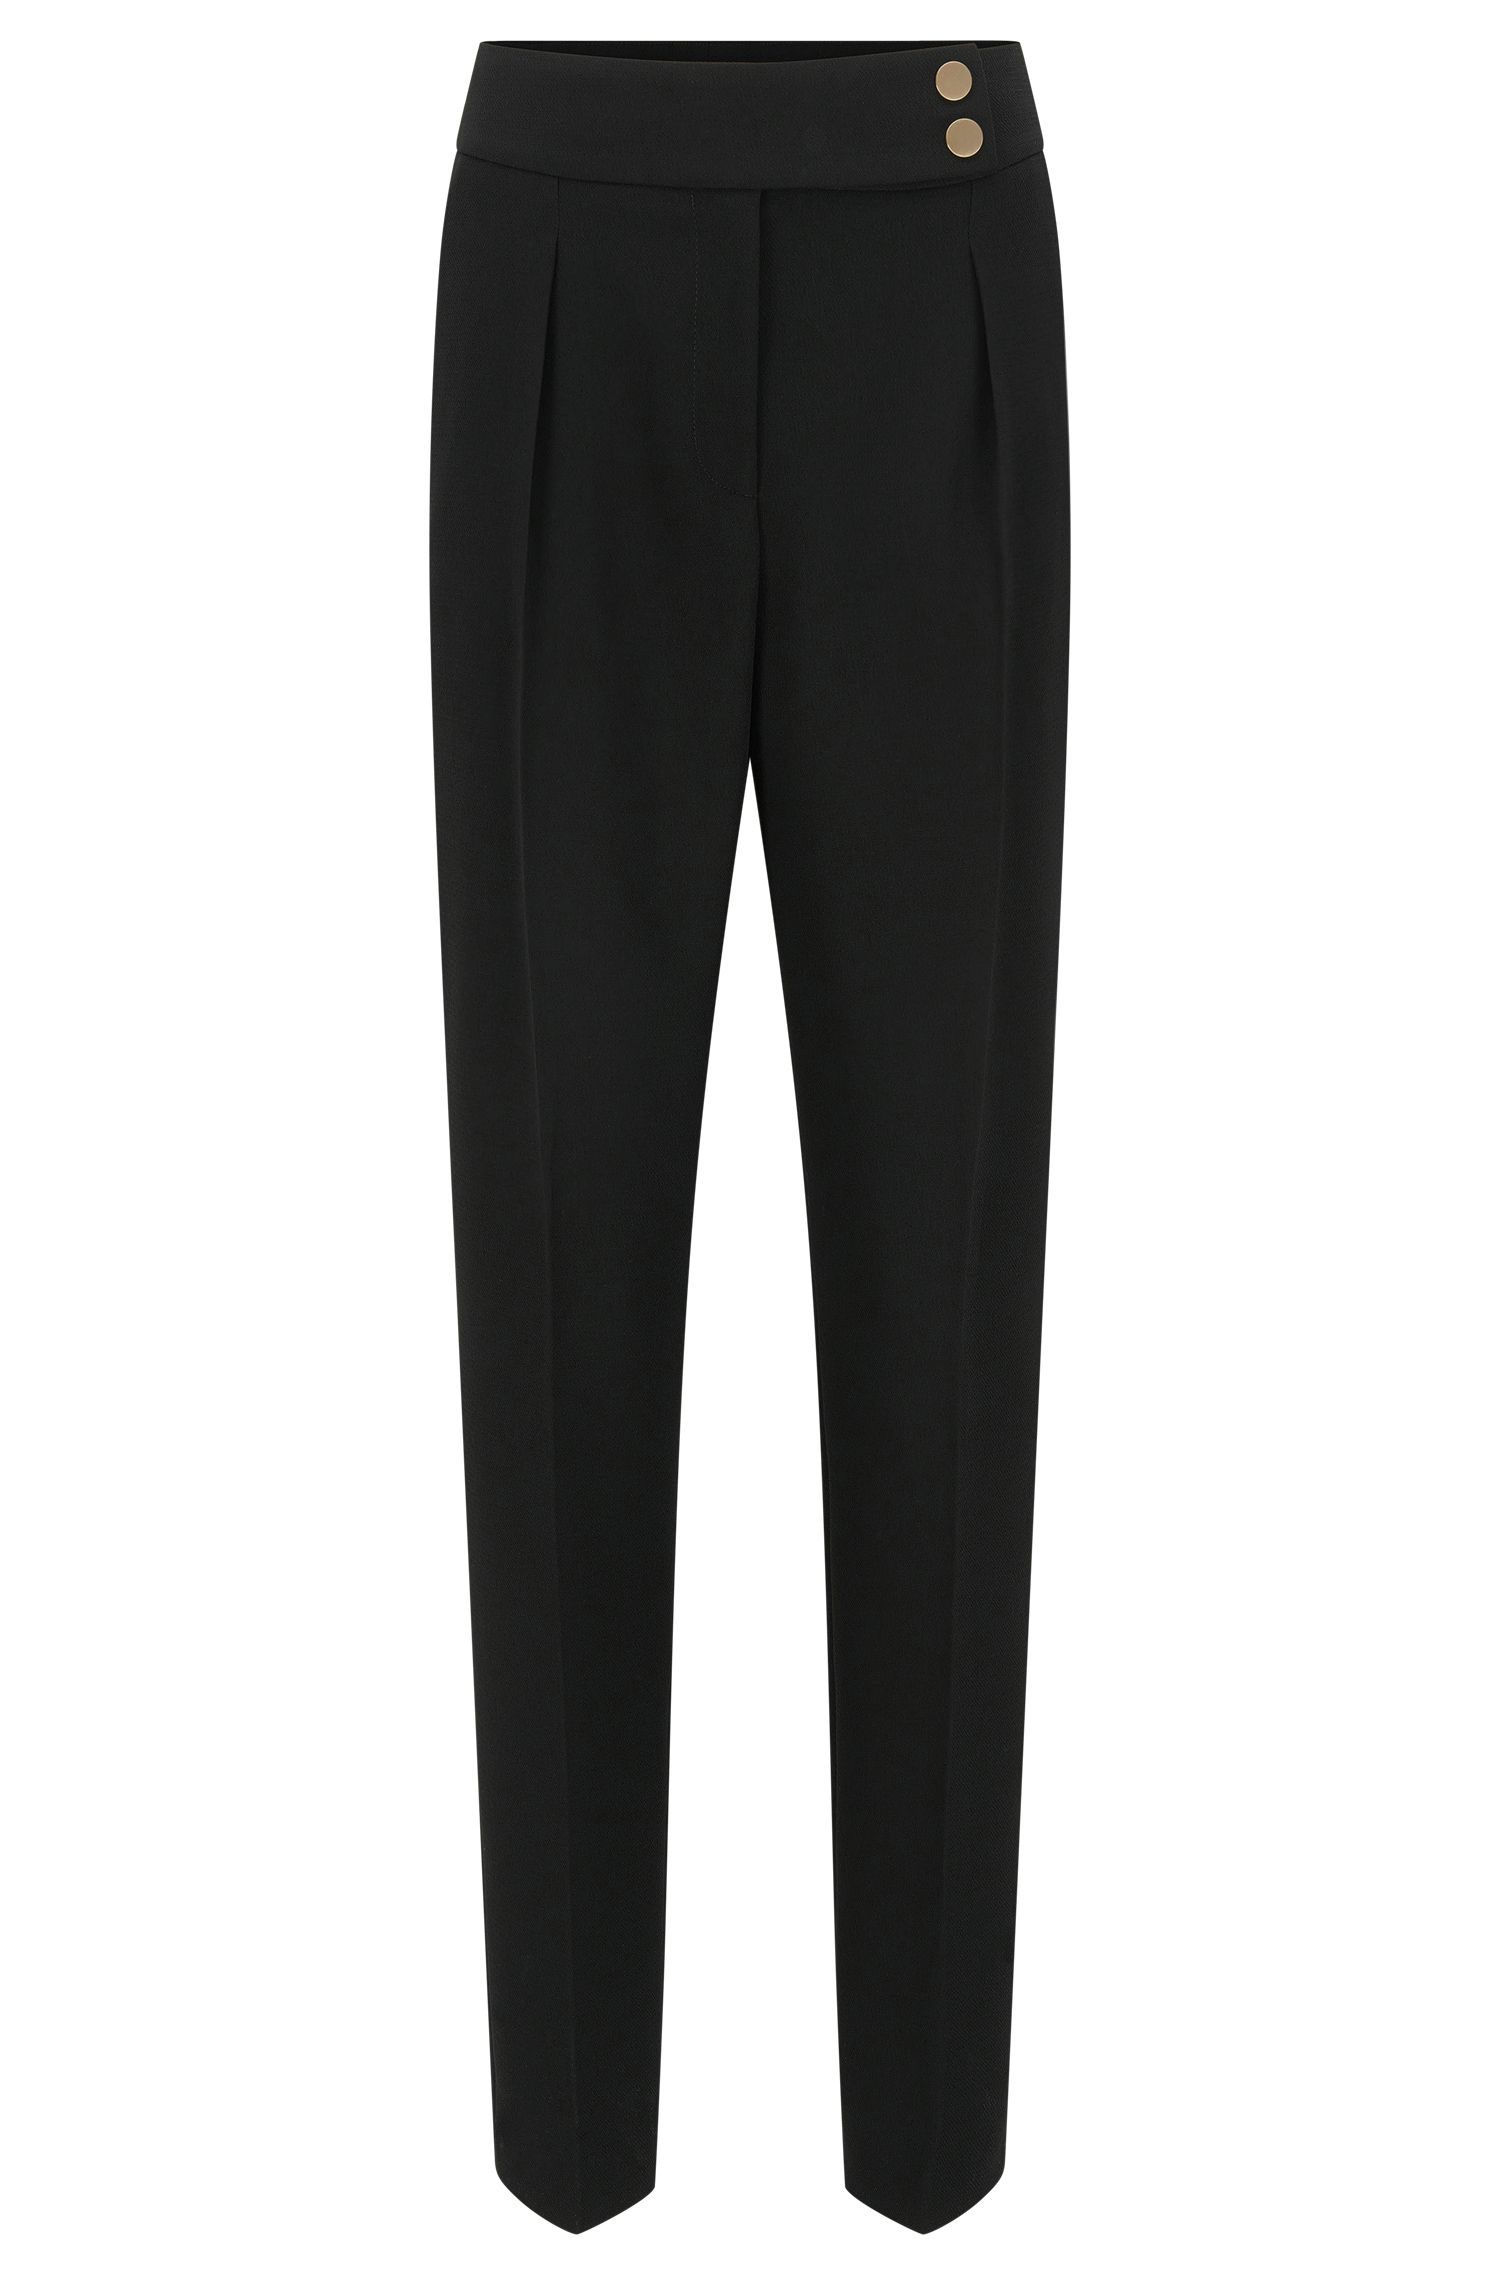 High-waisted trousers in lightweight crepe